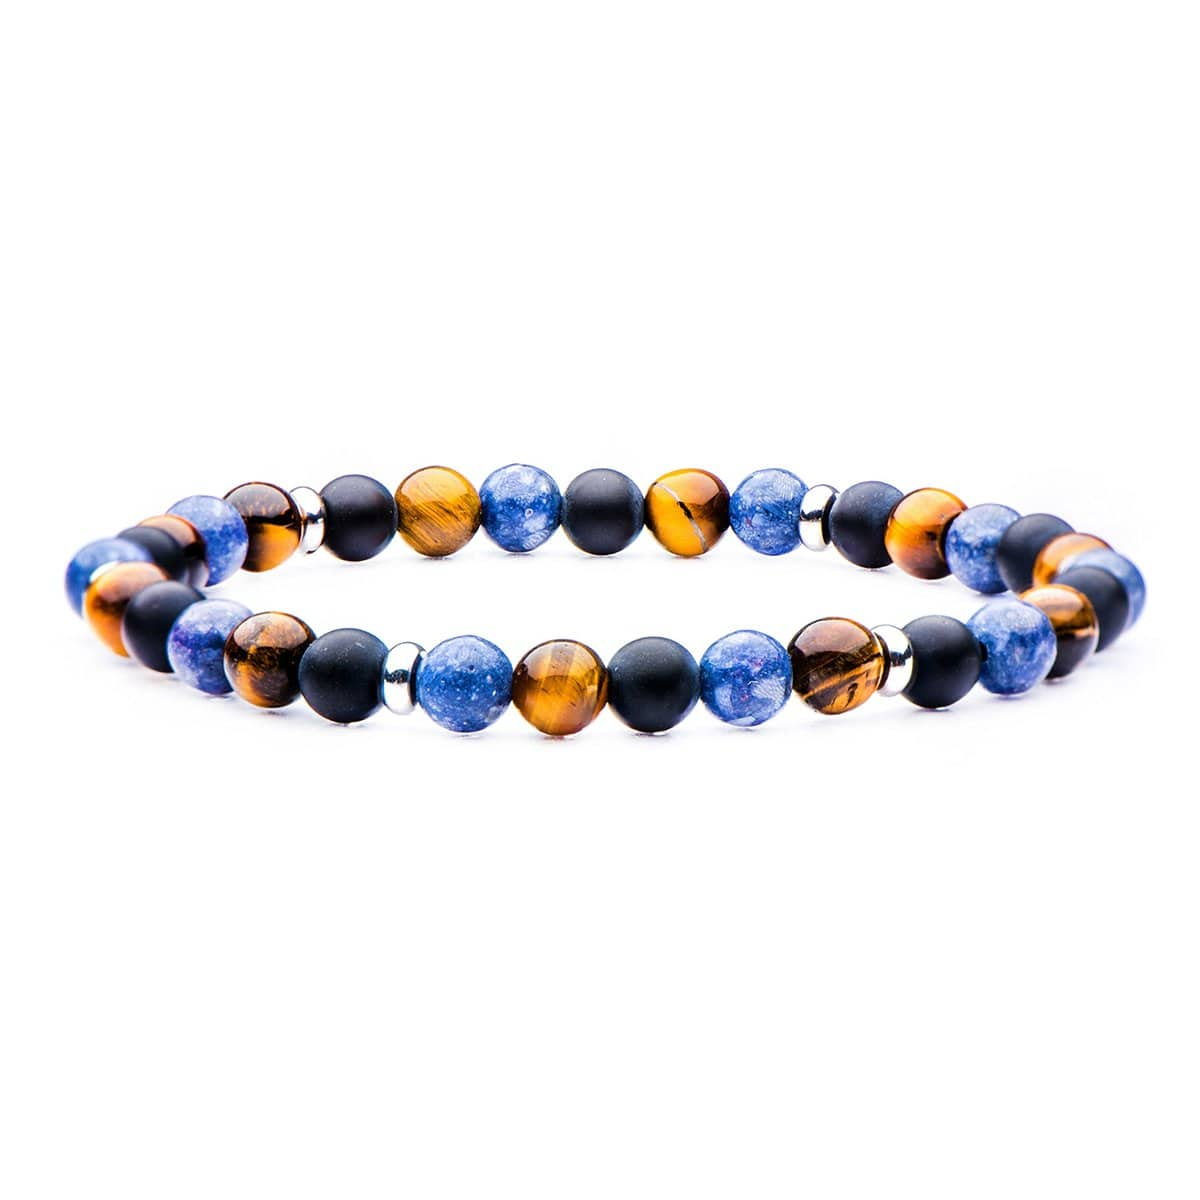 Silver Stainless Steel, Black Agate, Blue Coral & Tiger's Eye Stone 6mm Bead Stackable Bracelet